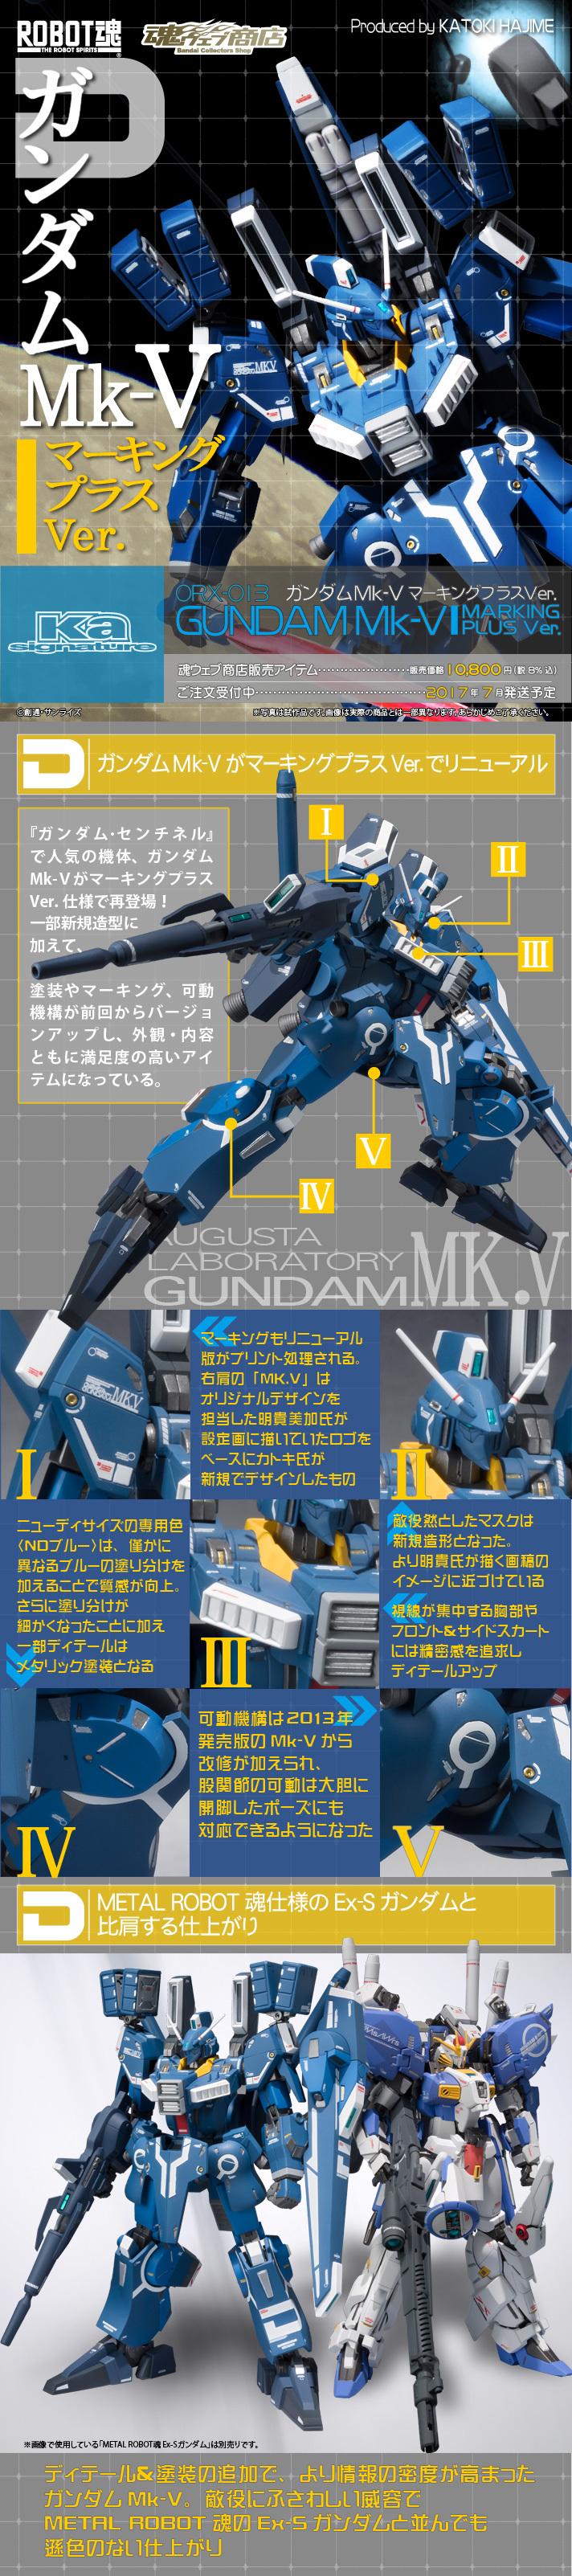 ROBOT魂(Ka signature) 〈SIDE MS〉 ガンダムMk-V マーキングプラスdtl_rs_gundammkv-mpv